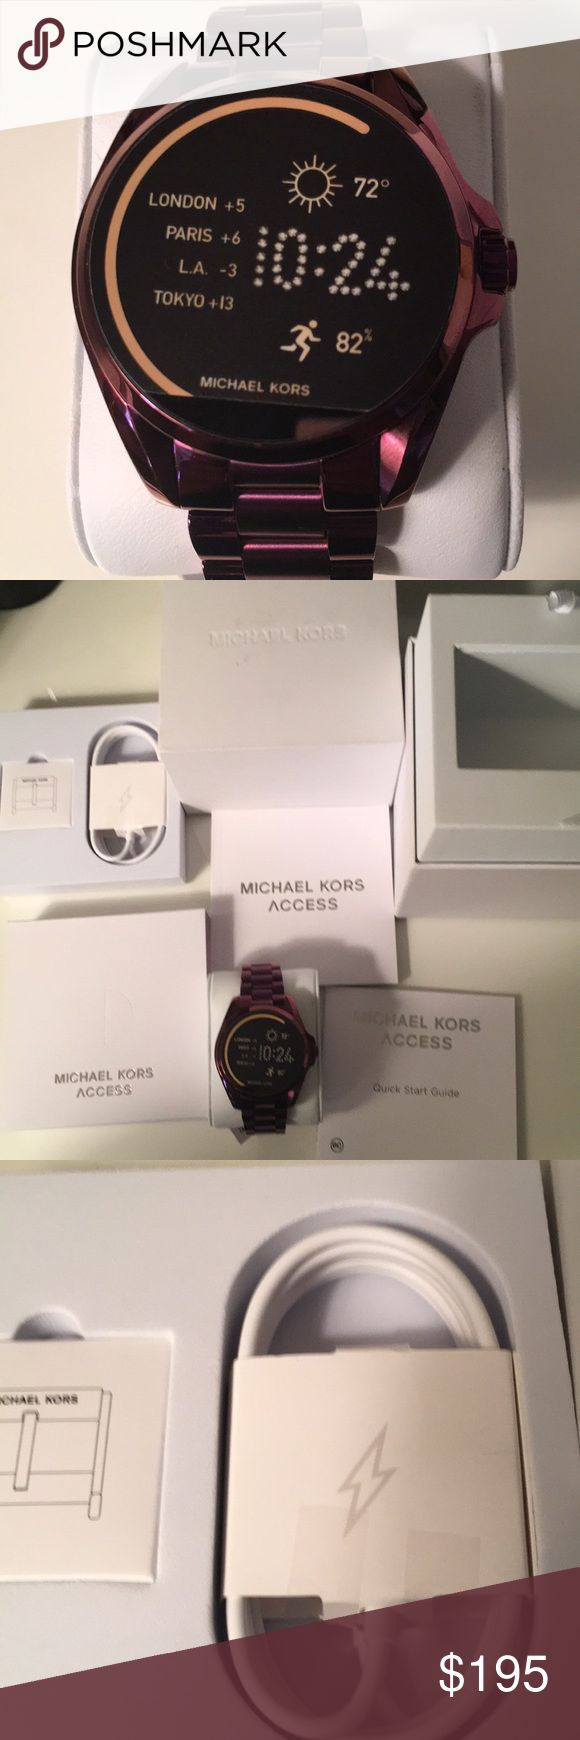 Michael Kors access watch. Micheal Kors access watch. Plum tone hardware. Digital face. Compatible with Android or iPhone. Brand new never used. Come with charging cord never opened. The back the clasp and the face of the watch are still in plastic as shown. Michael Kors Accessories Watches